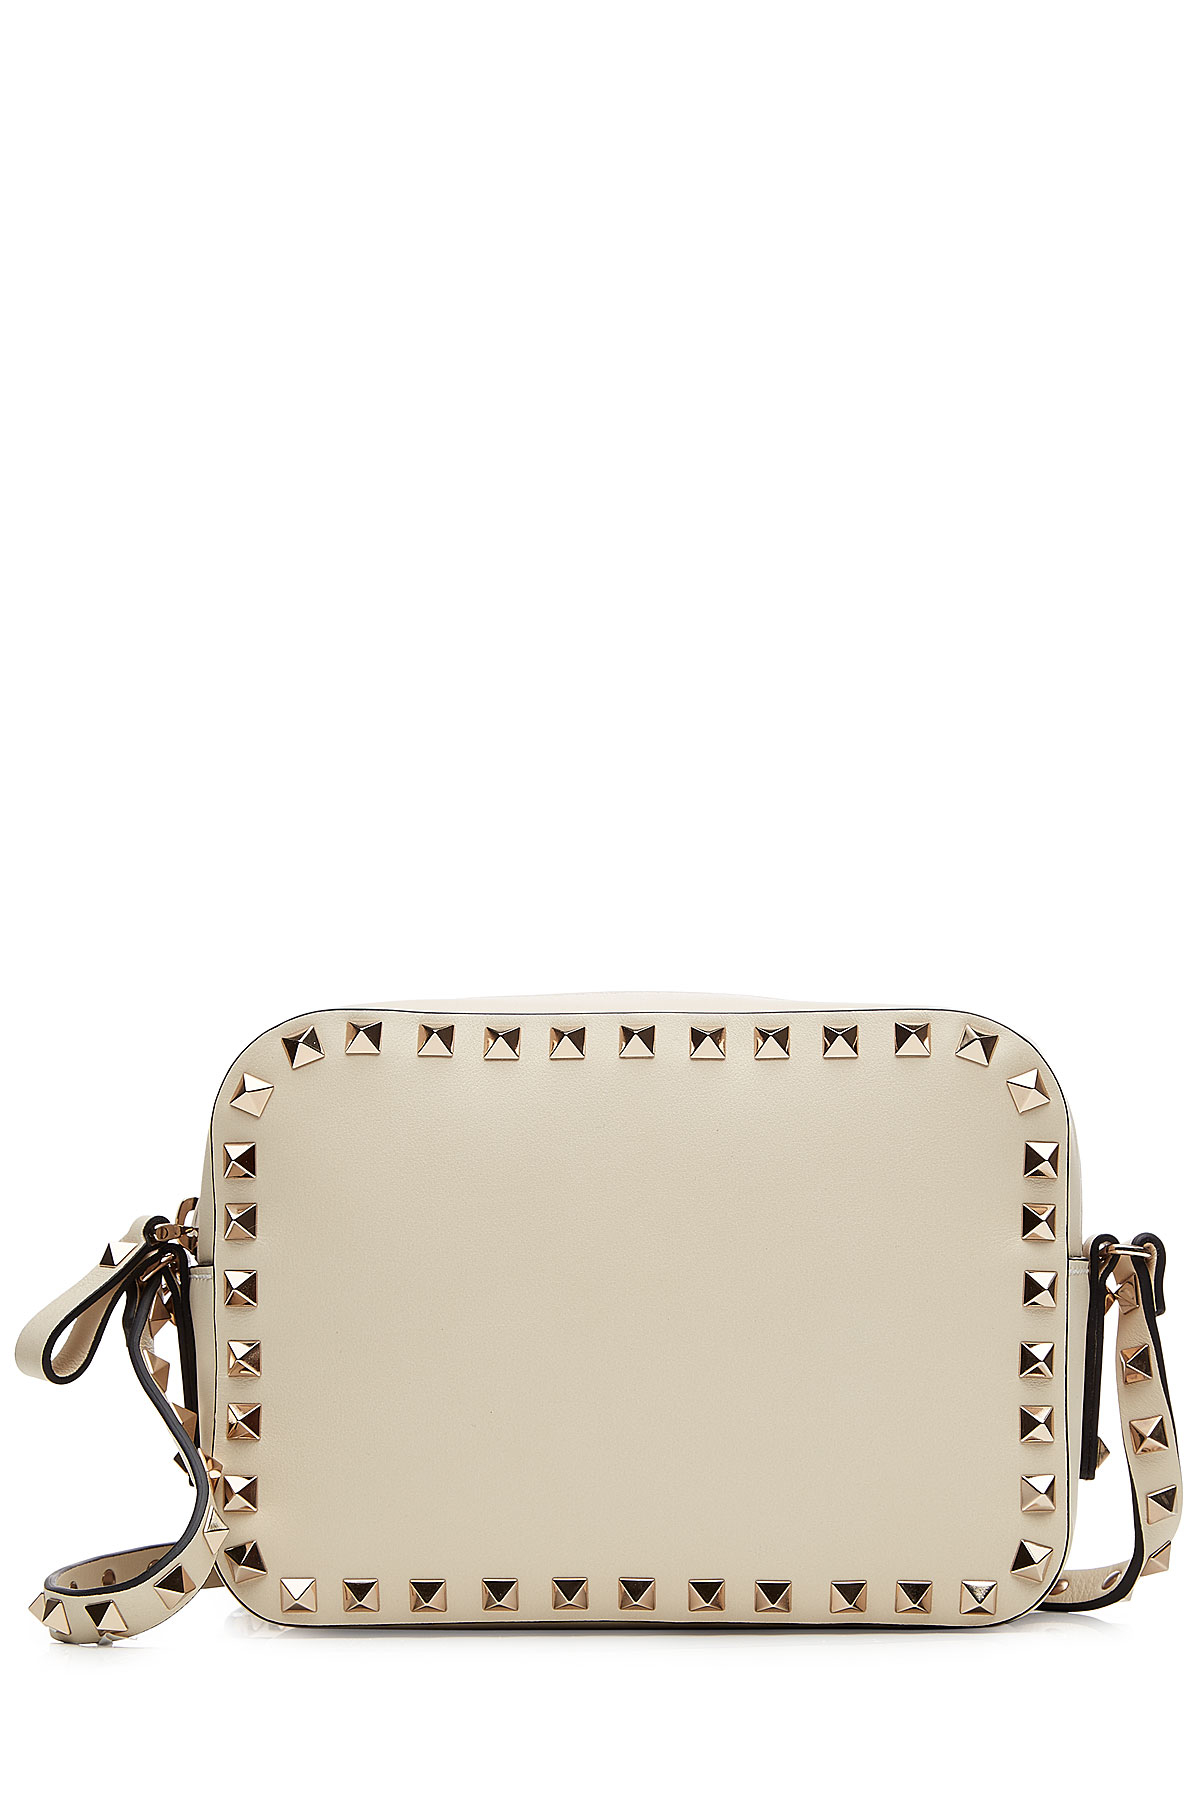 quilted Rockstud camera bag - White Valentino vddv5cAIE6